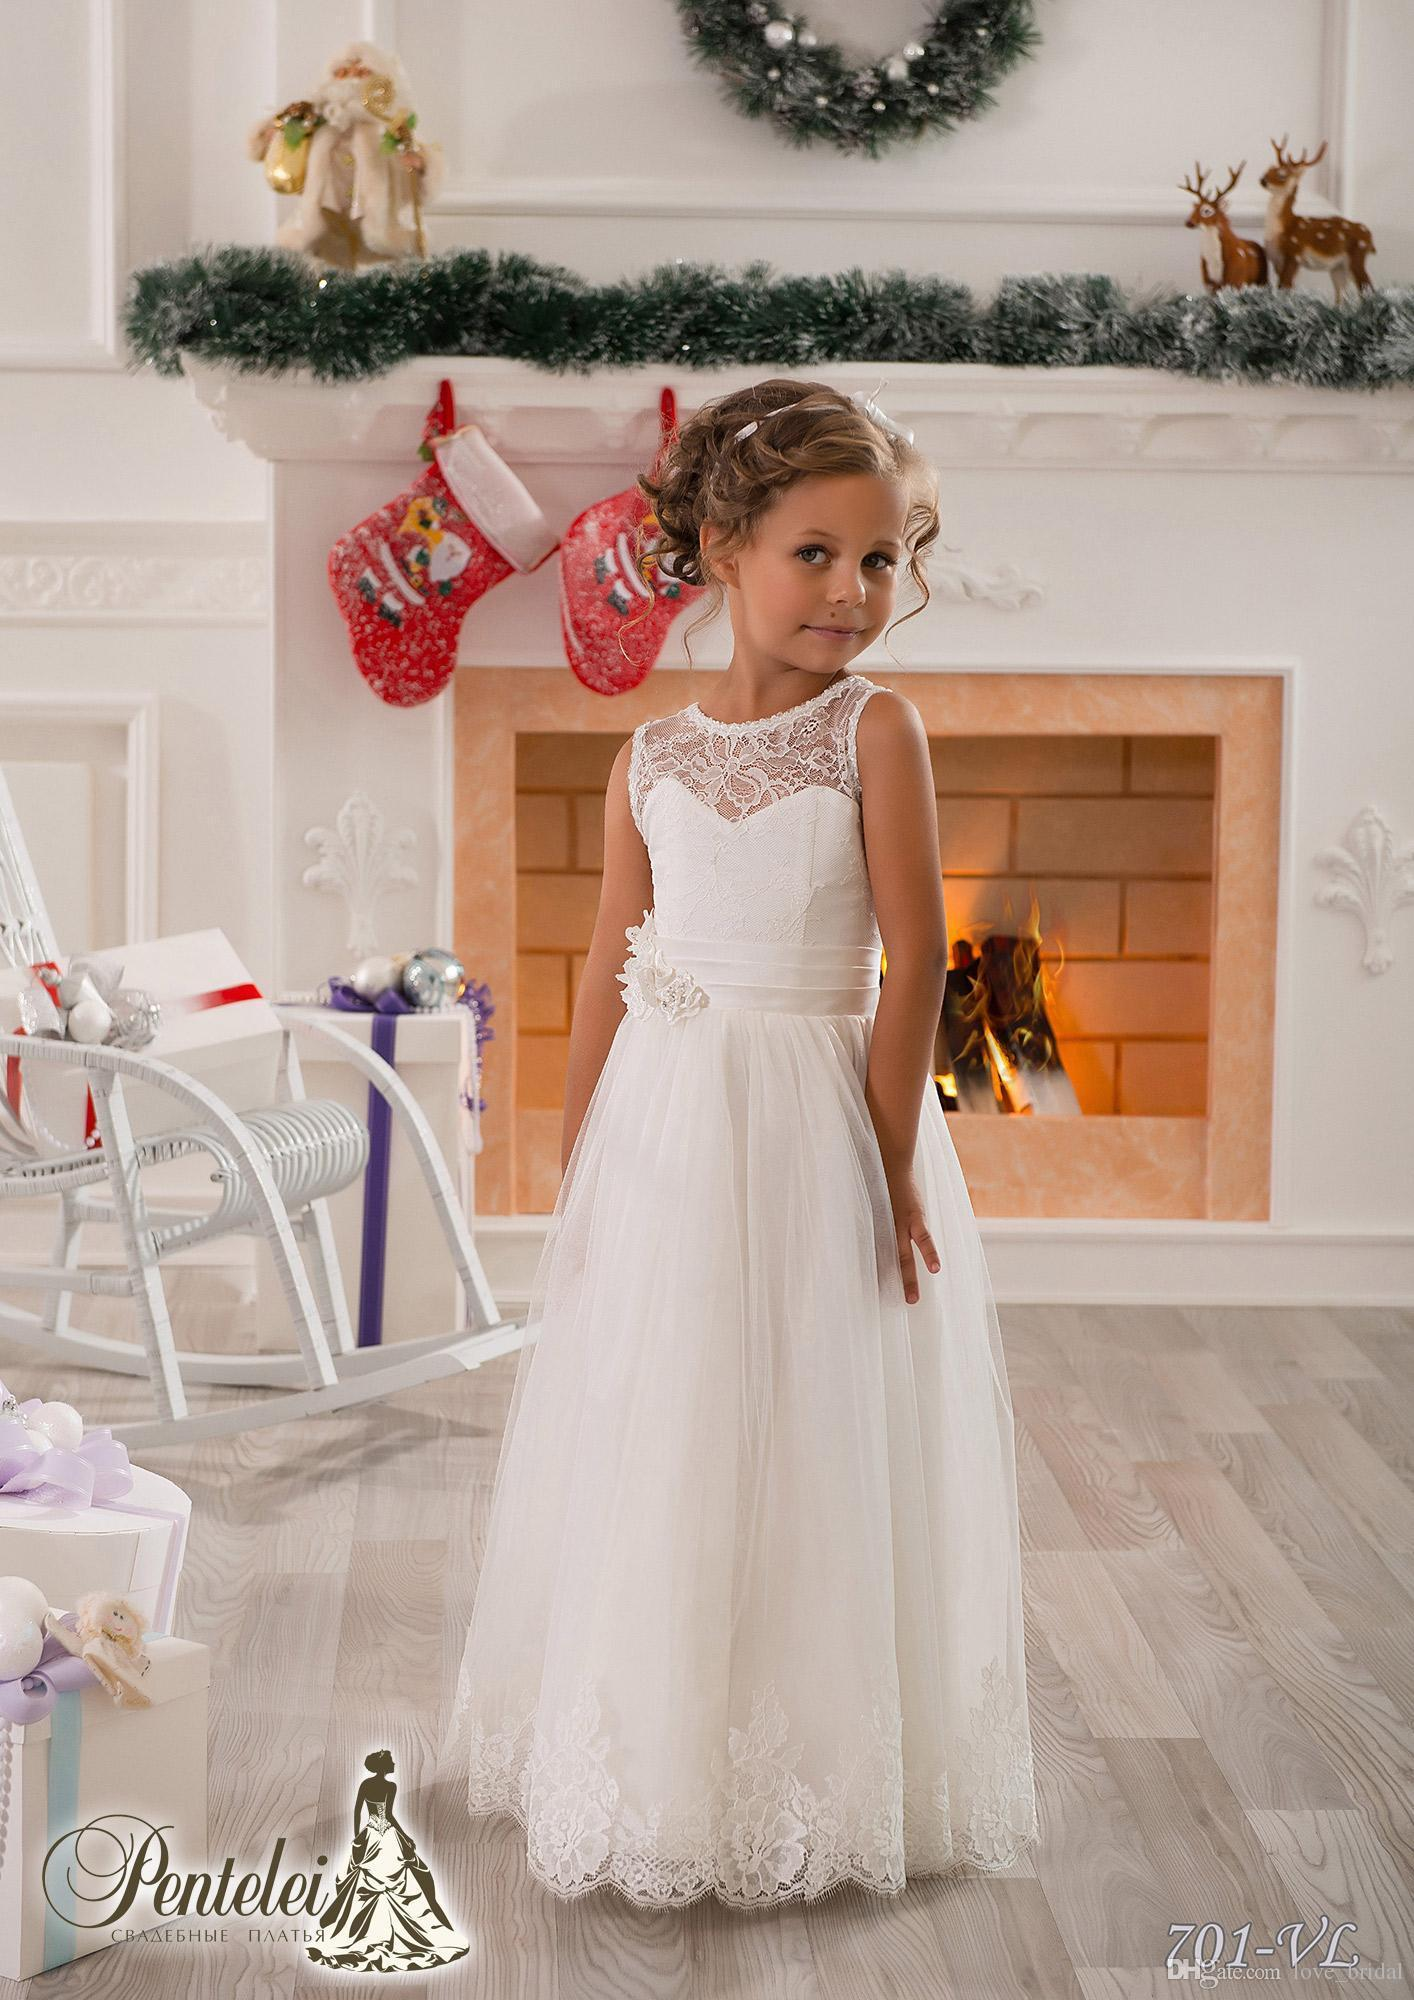 Cheap lace flower girls dresses for weddings 2016 crew white cheap lace flower girls dresses for weddings 2016 crew white princess girls dresses for communion dresses little girls dresses floor length baby pink flower ombrellifo Image collections